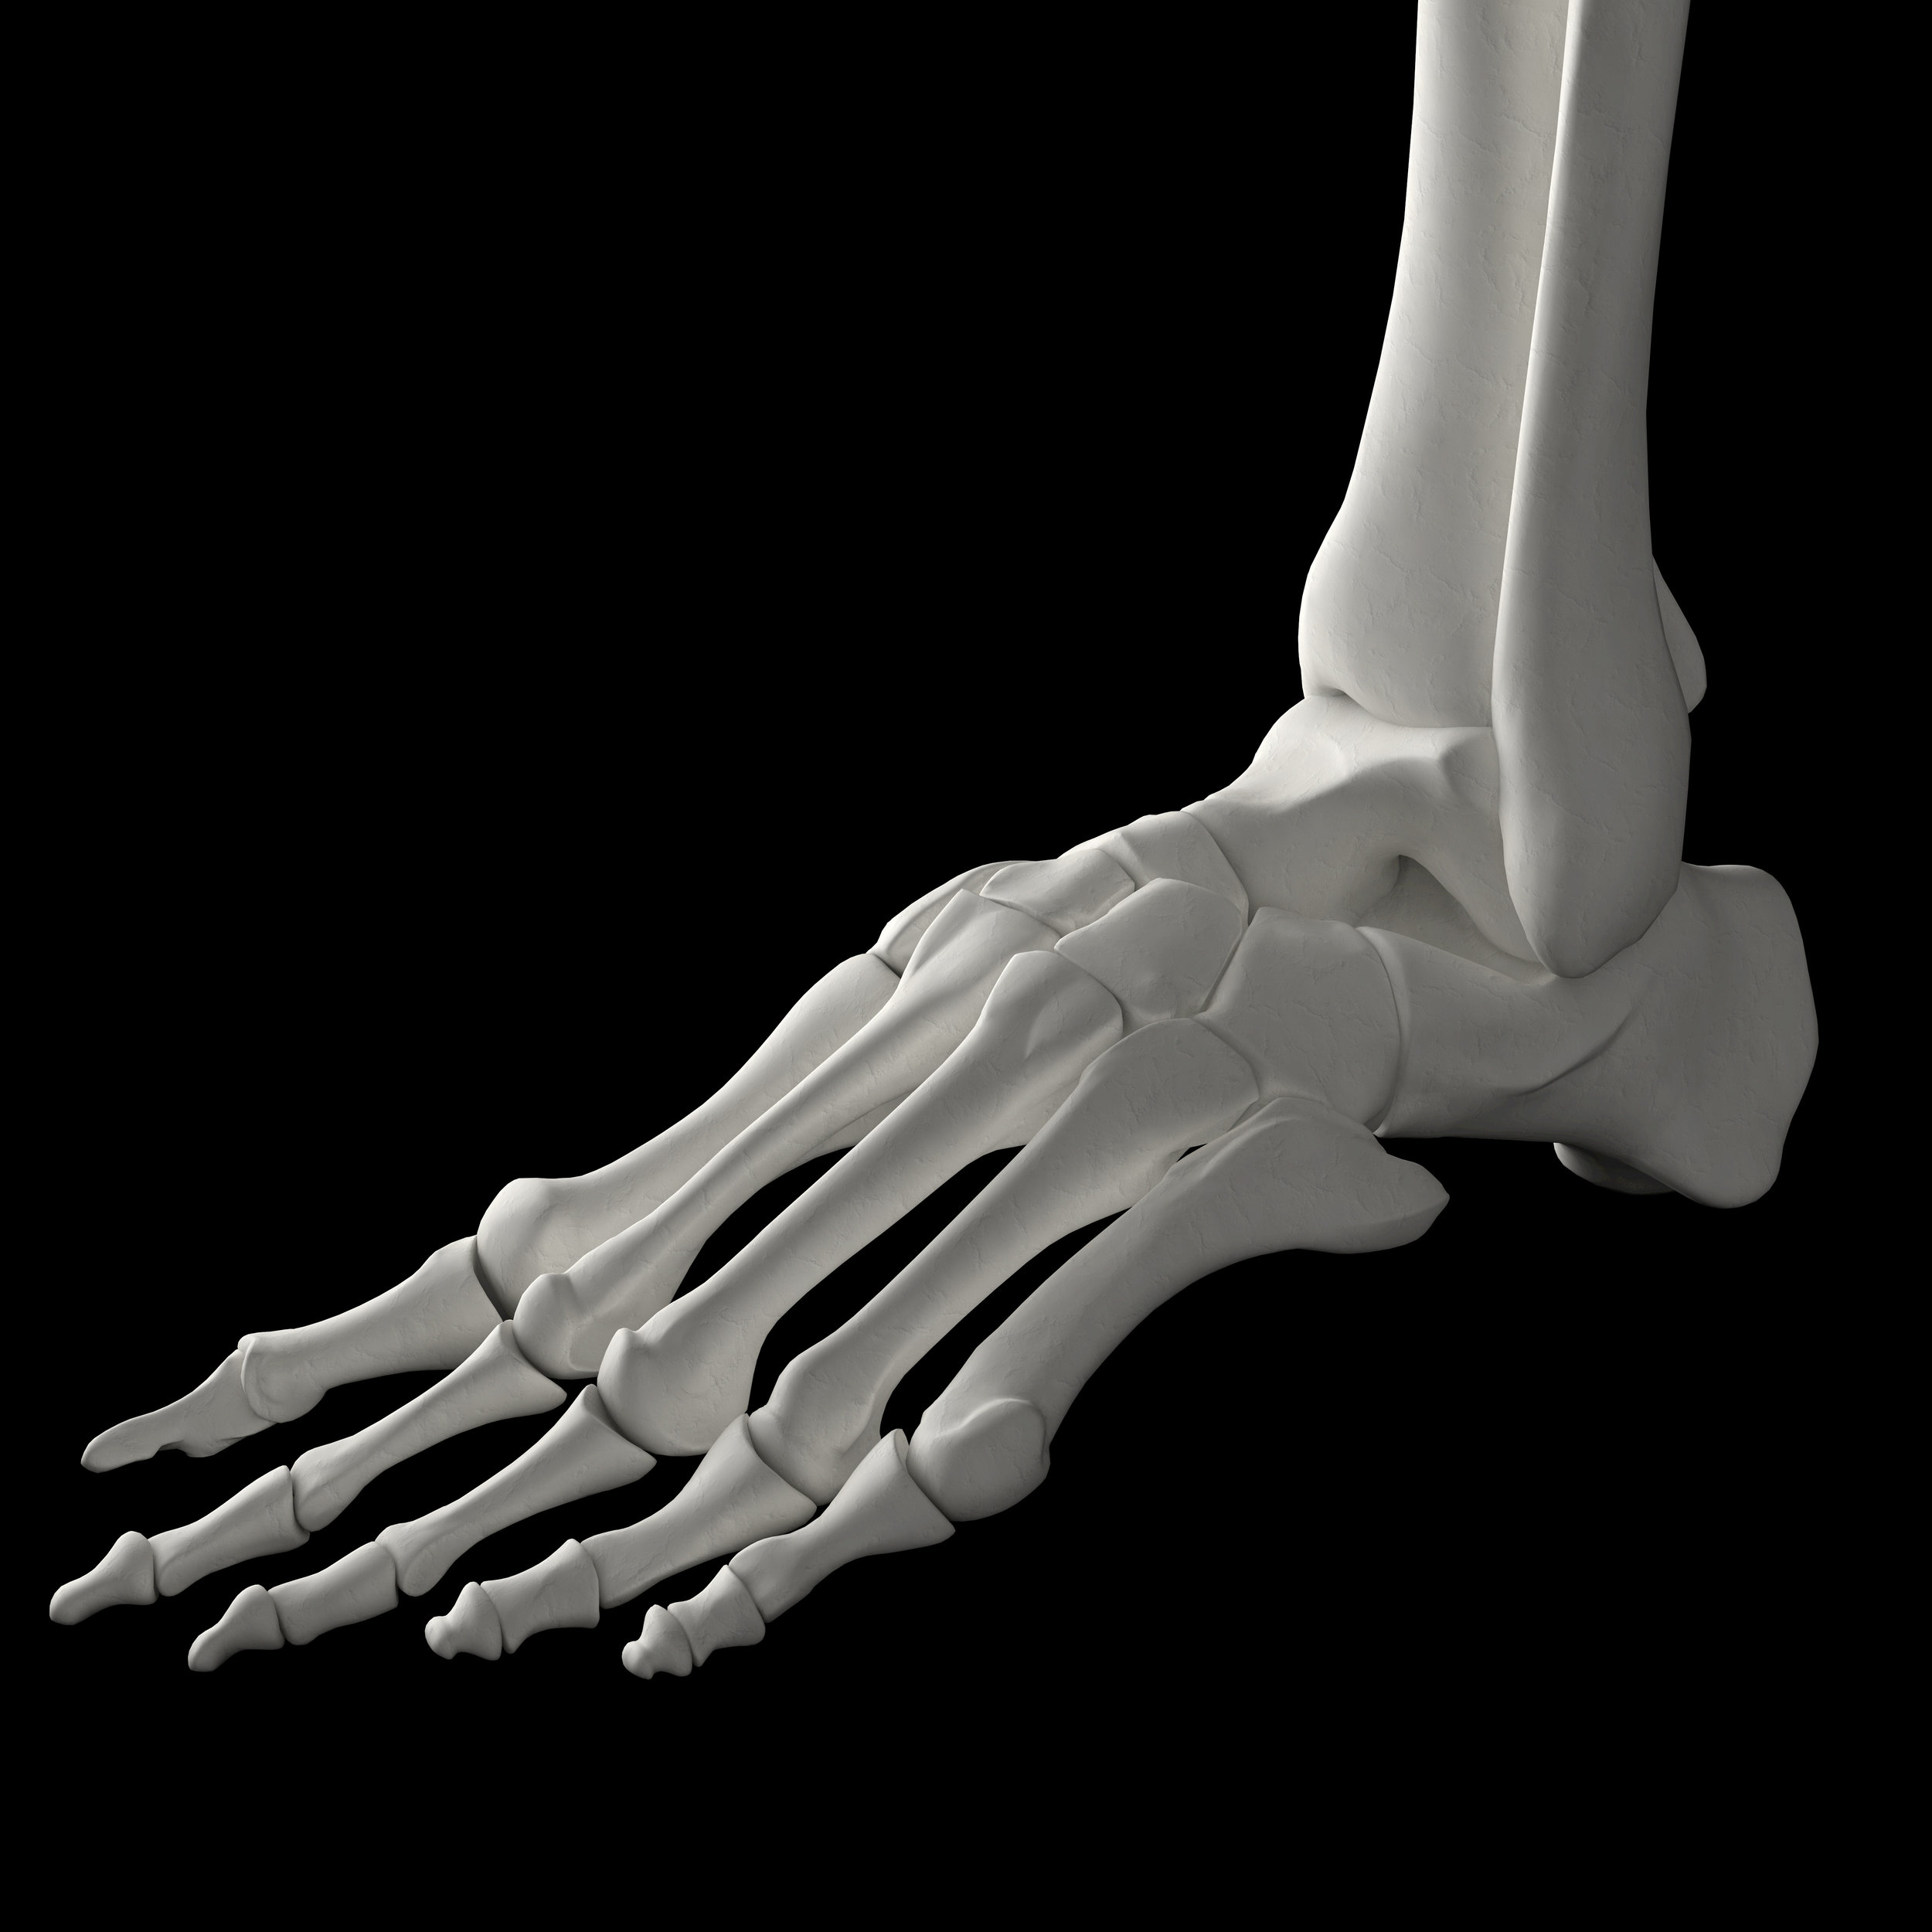 lackawanna ny podiatrist is an expert in treating foot and ankle fractures